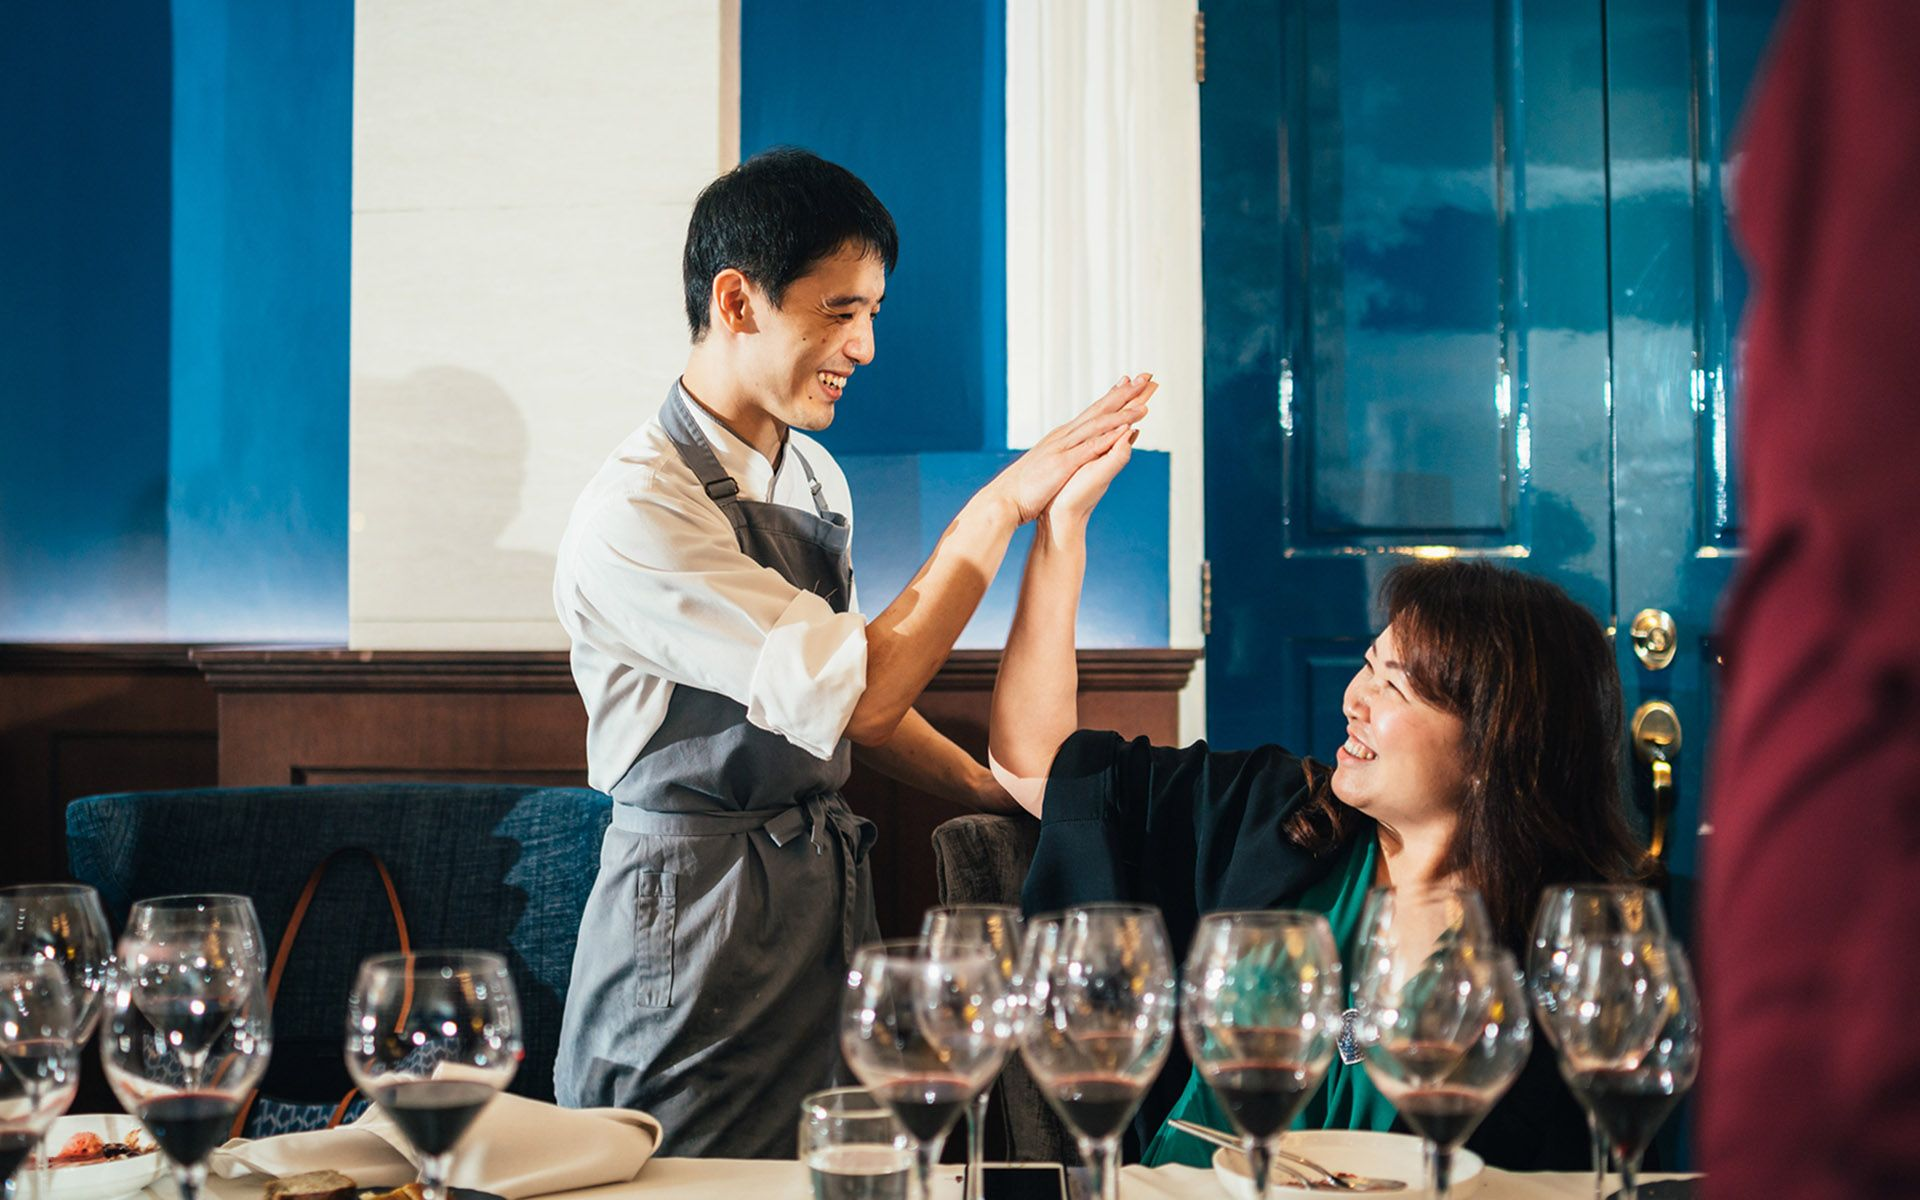 Chef Takuya and Datin Karen H'ng giving each other a high-five over the success of the wine dinner